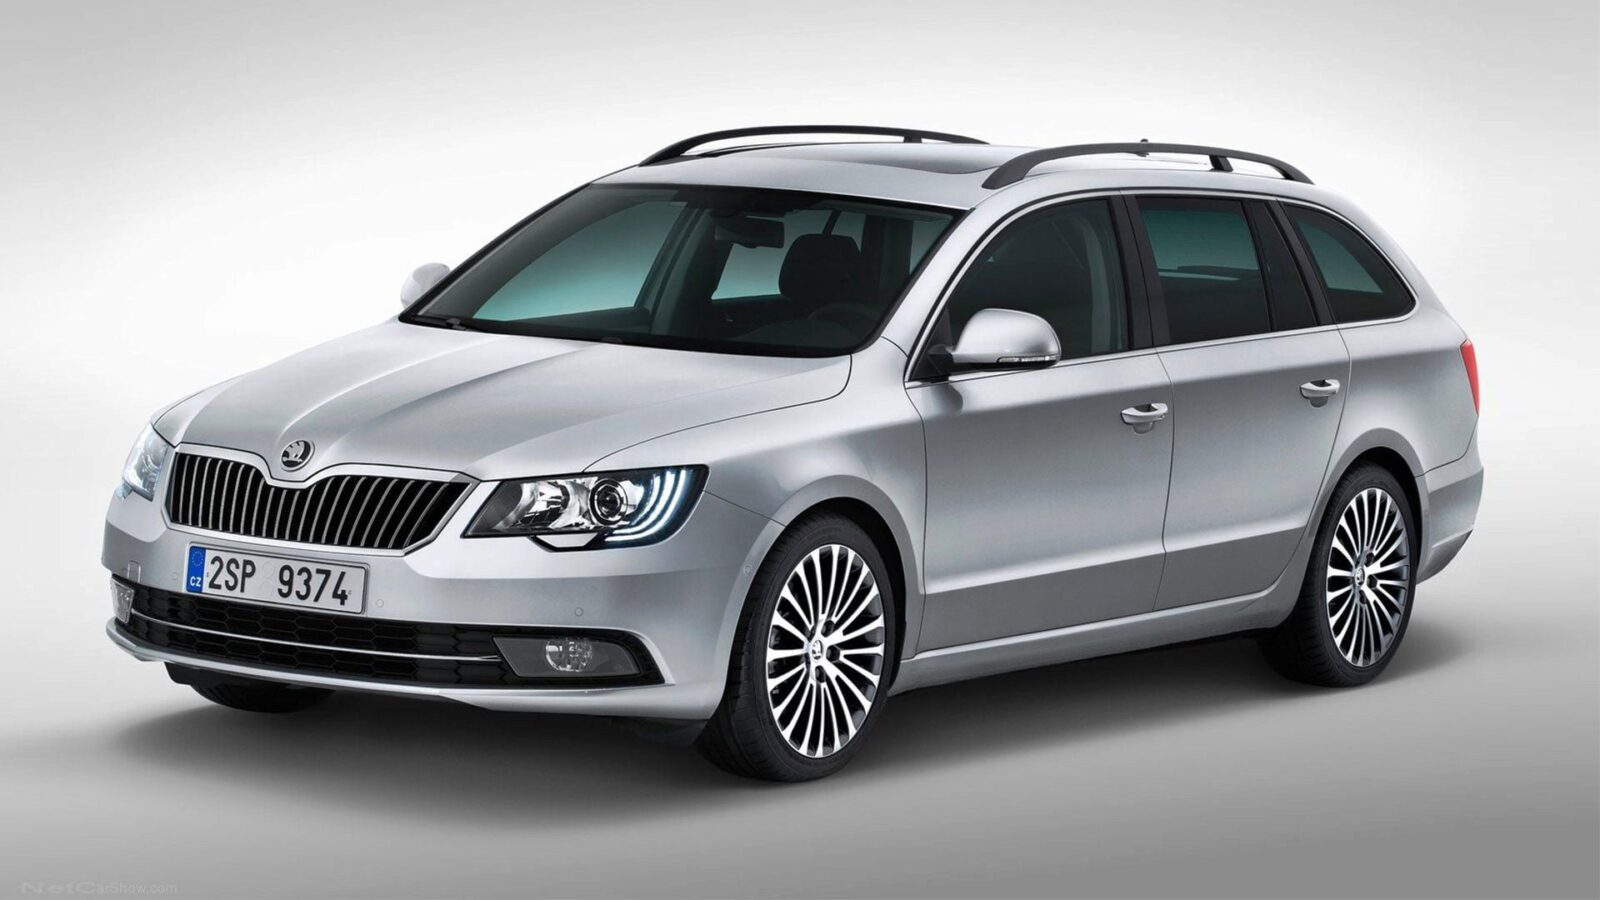 13 skoda superb combi wallpapers hd download. Black Bedroom Furniture Sets. Home Design Ideas